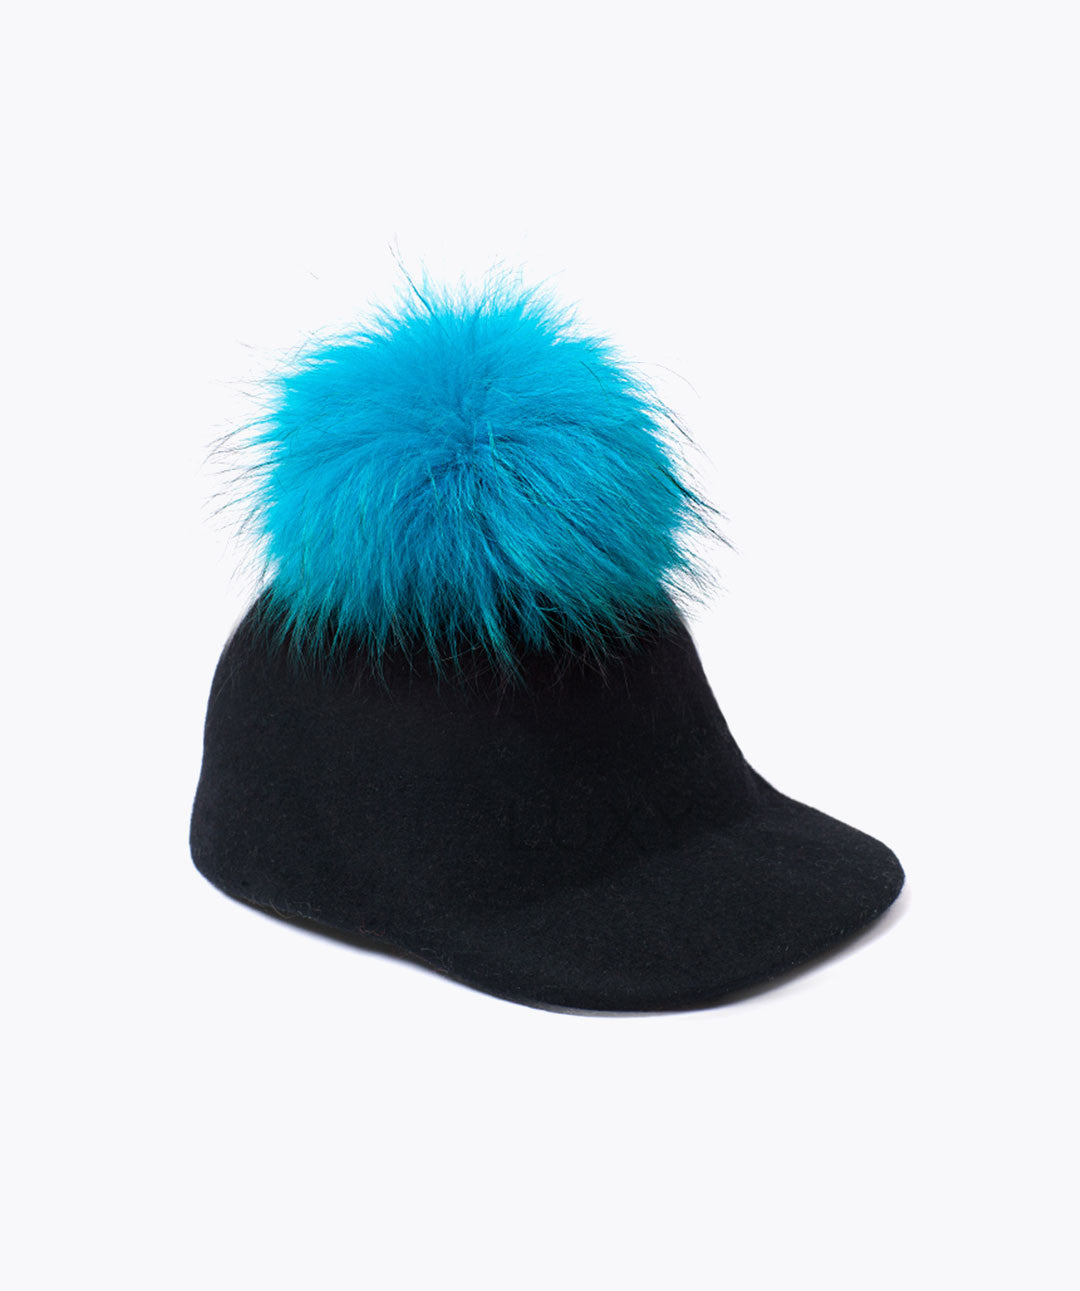 UBER FUR POM POM CAPS - BLACK